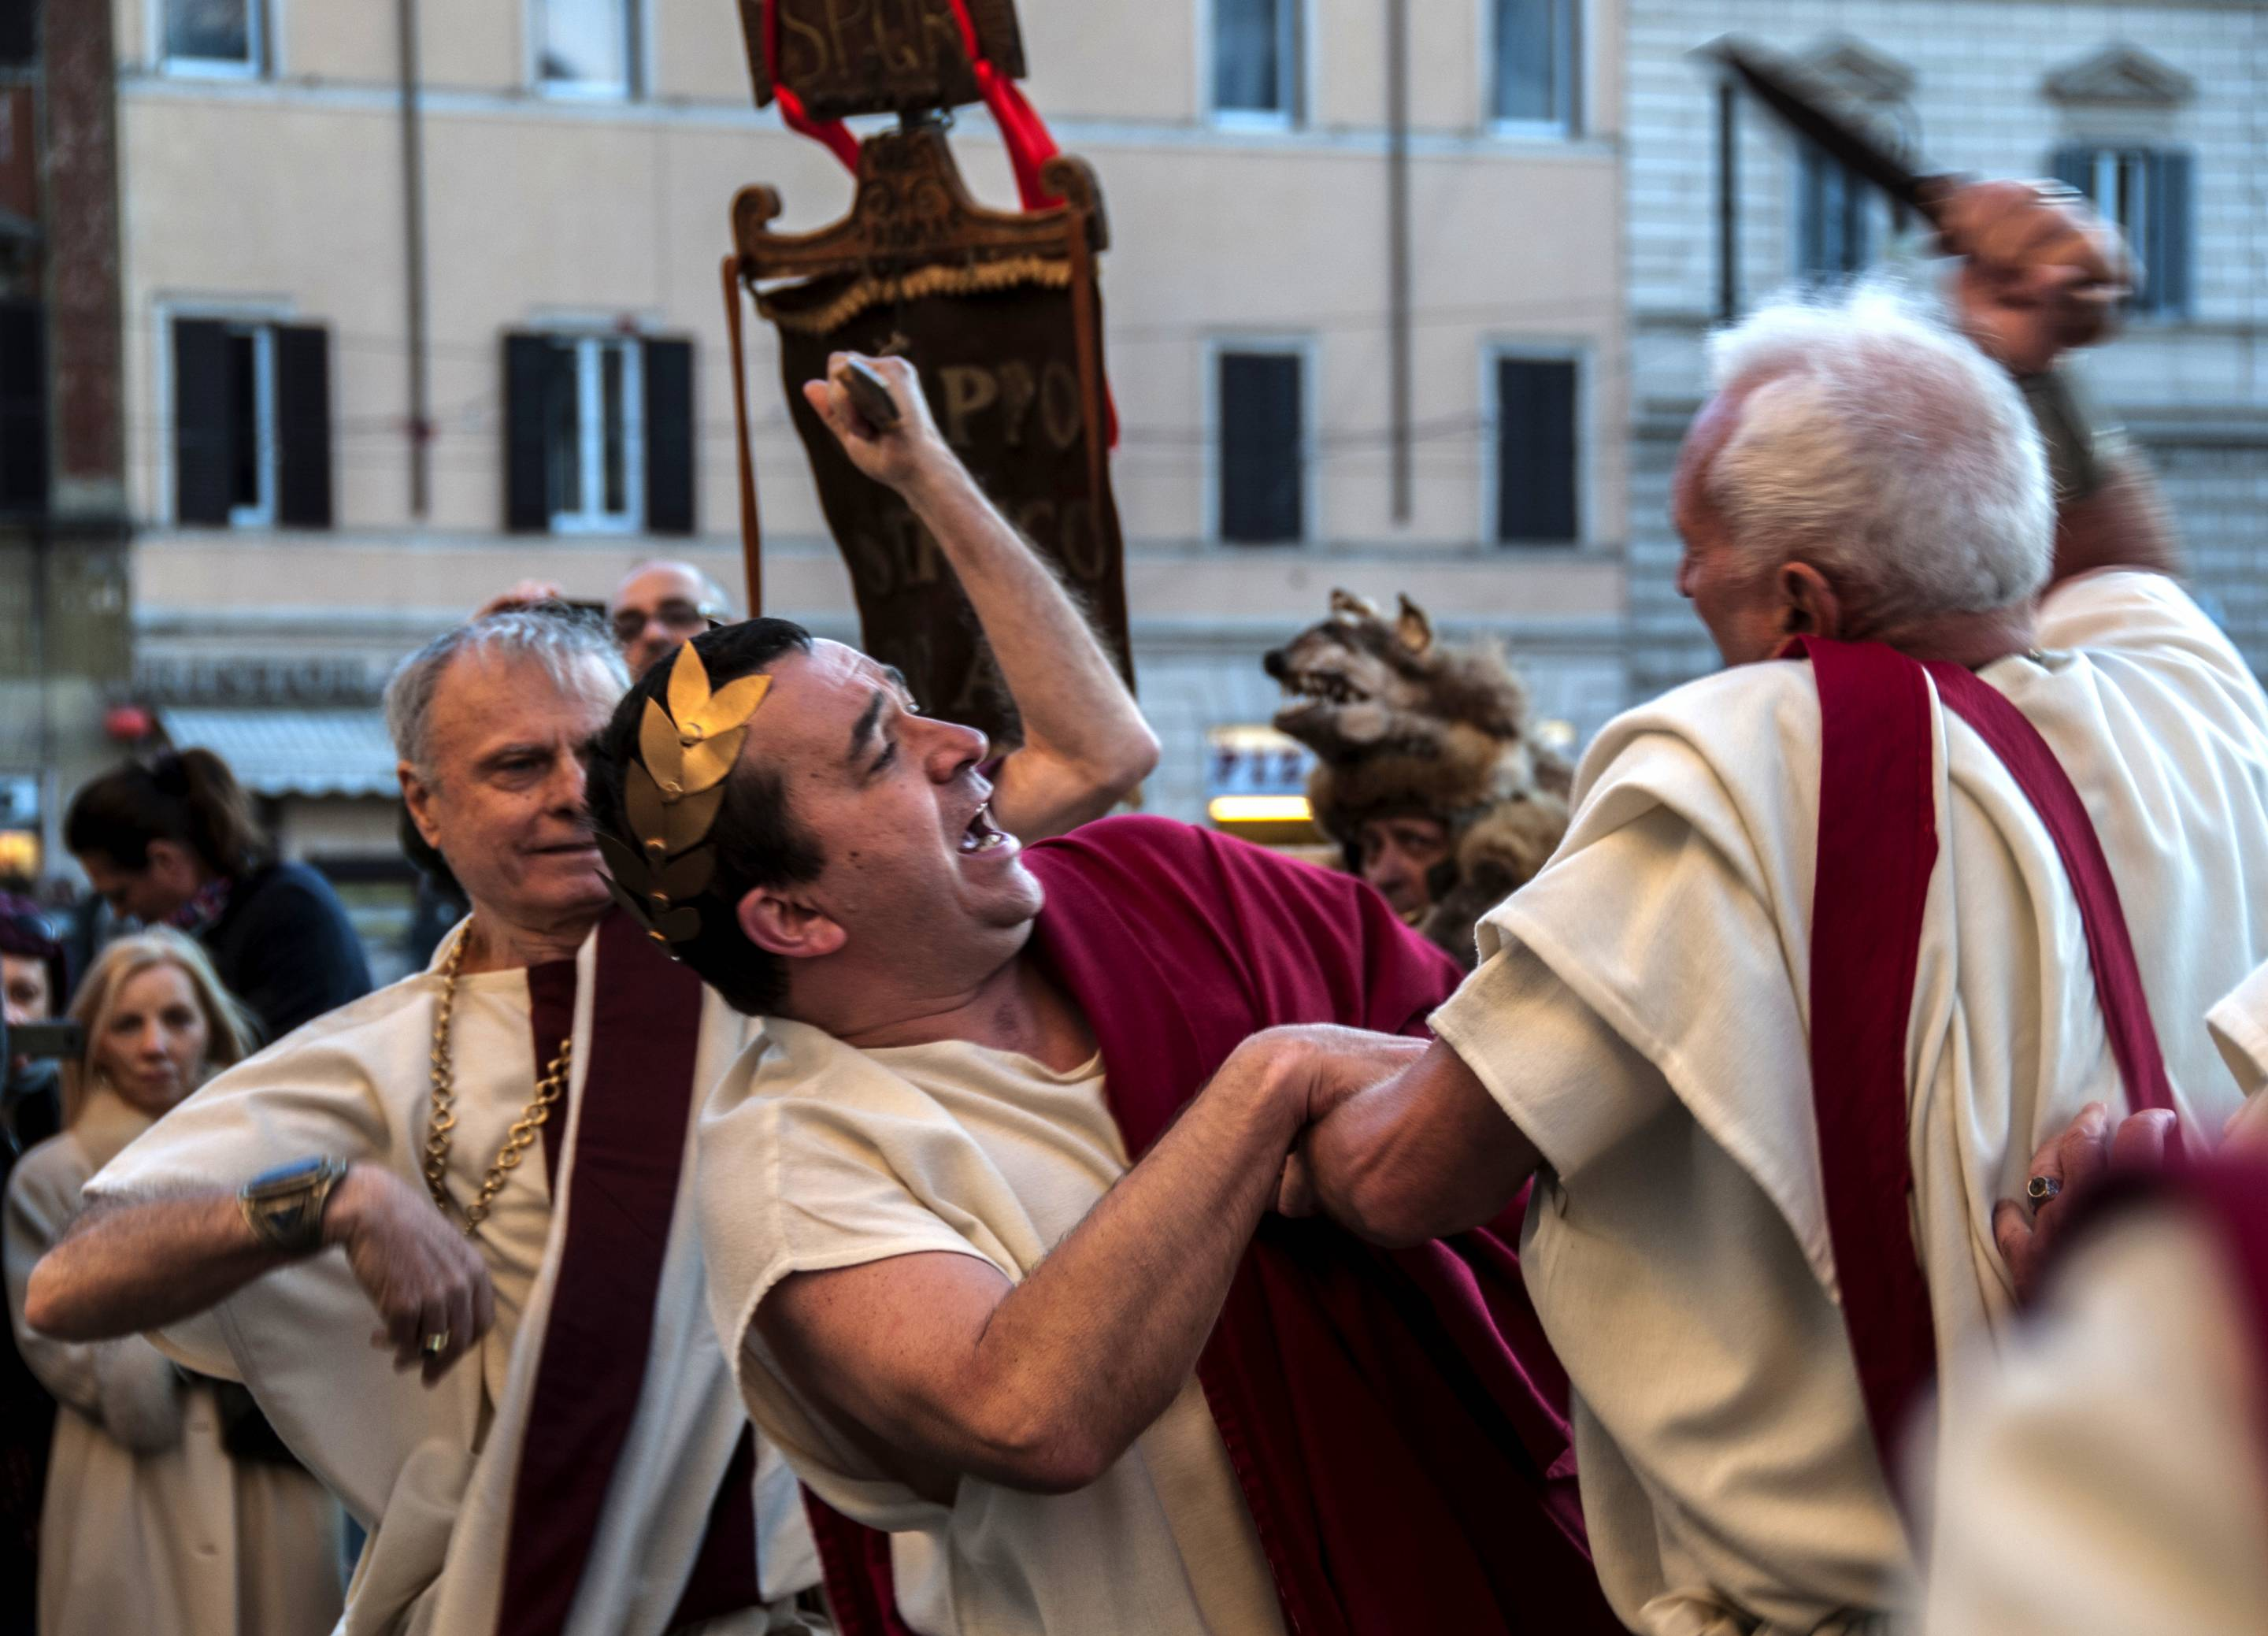 Reenactment of the Ides of March, the day of the killing of